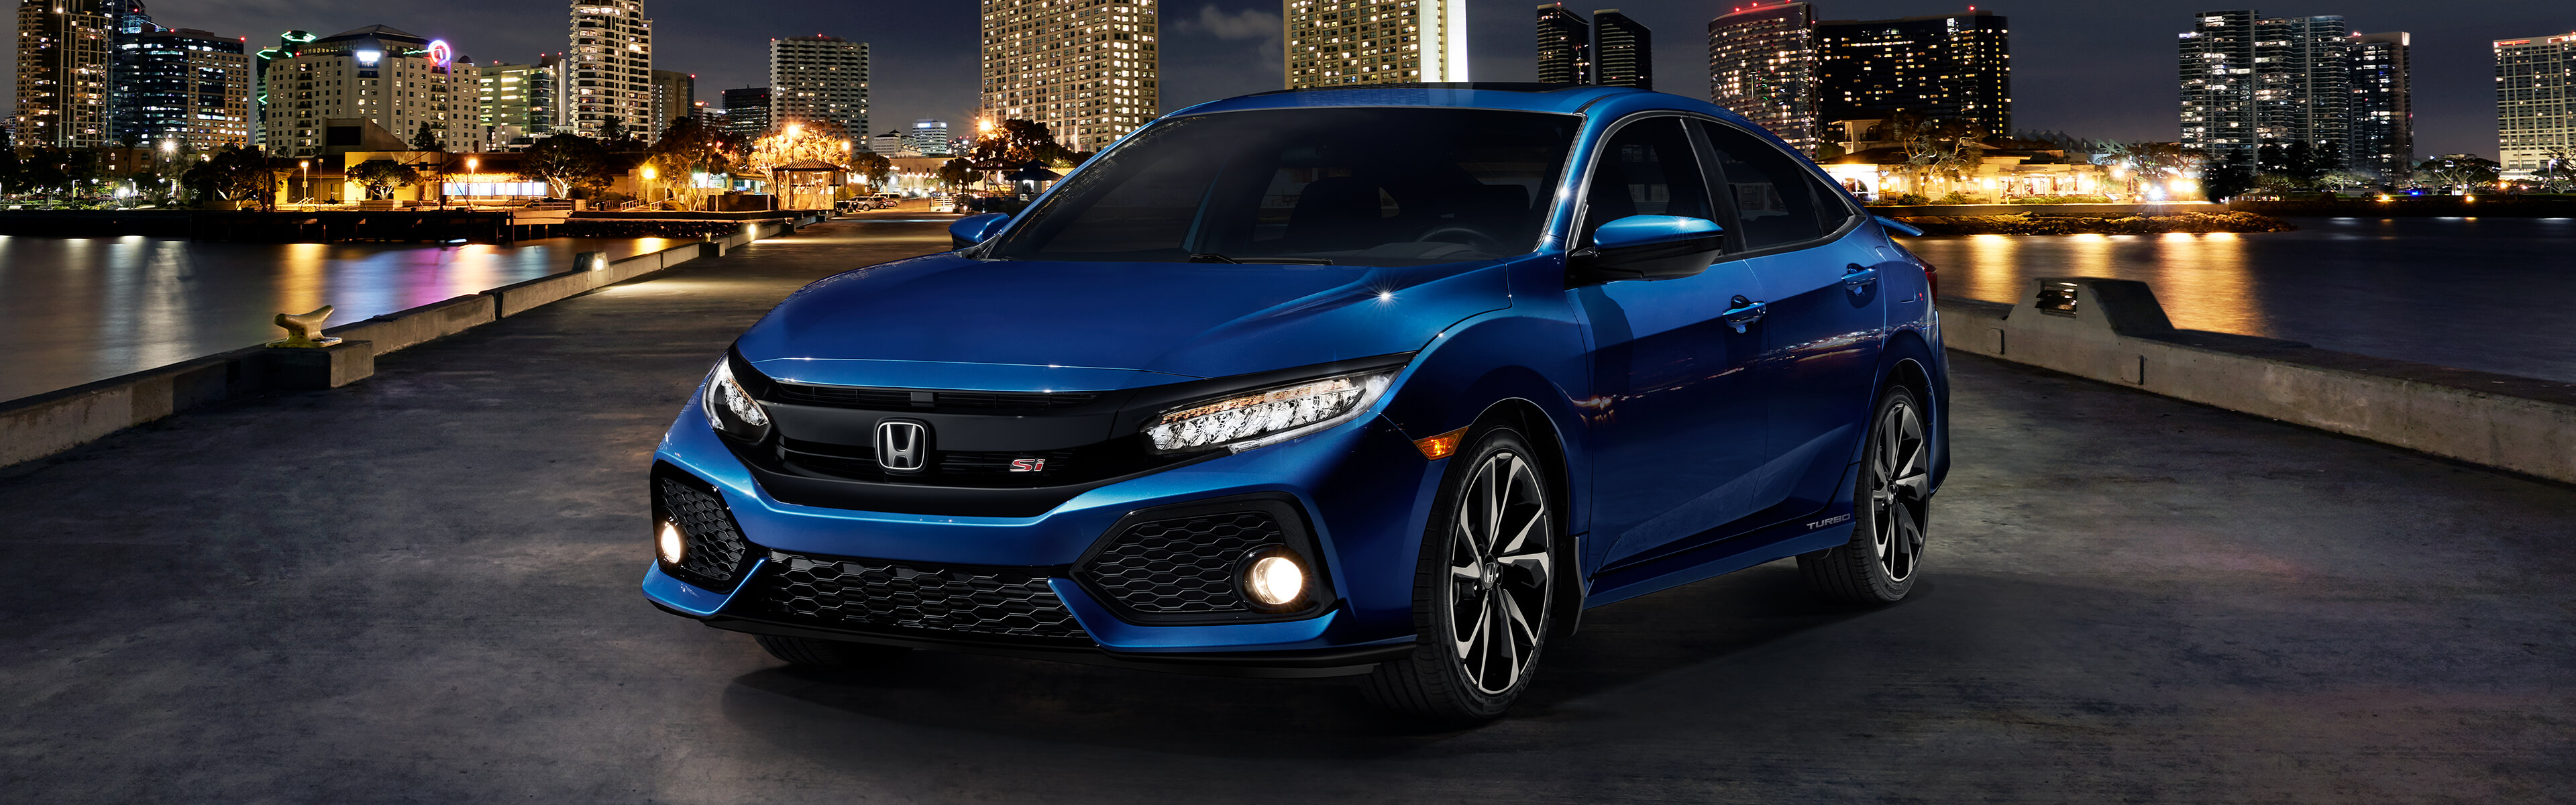 ... Its Roomy Interior To Its Outstanding Gas Mileage. Here Are Just A Few  Of The Most Popular Perks To Becoming The Owner Of A Used 2018 Honda Civic  Today.